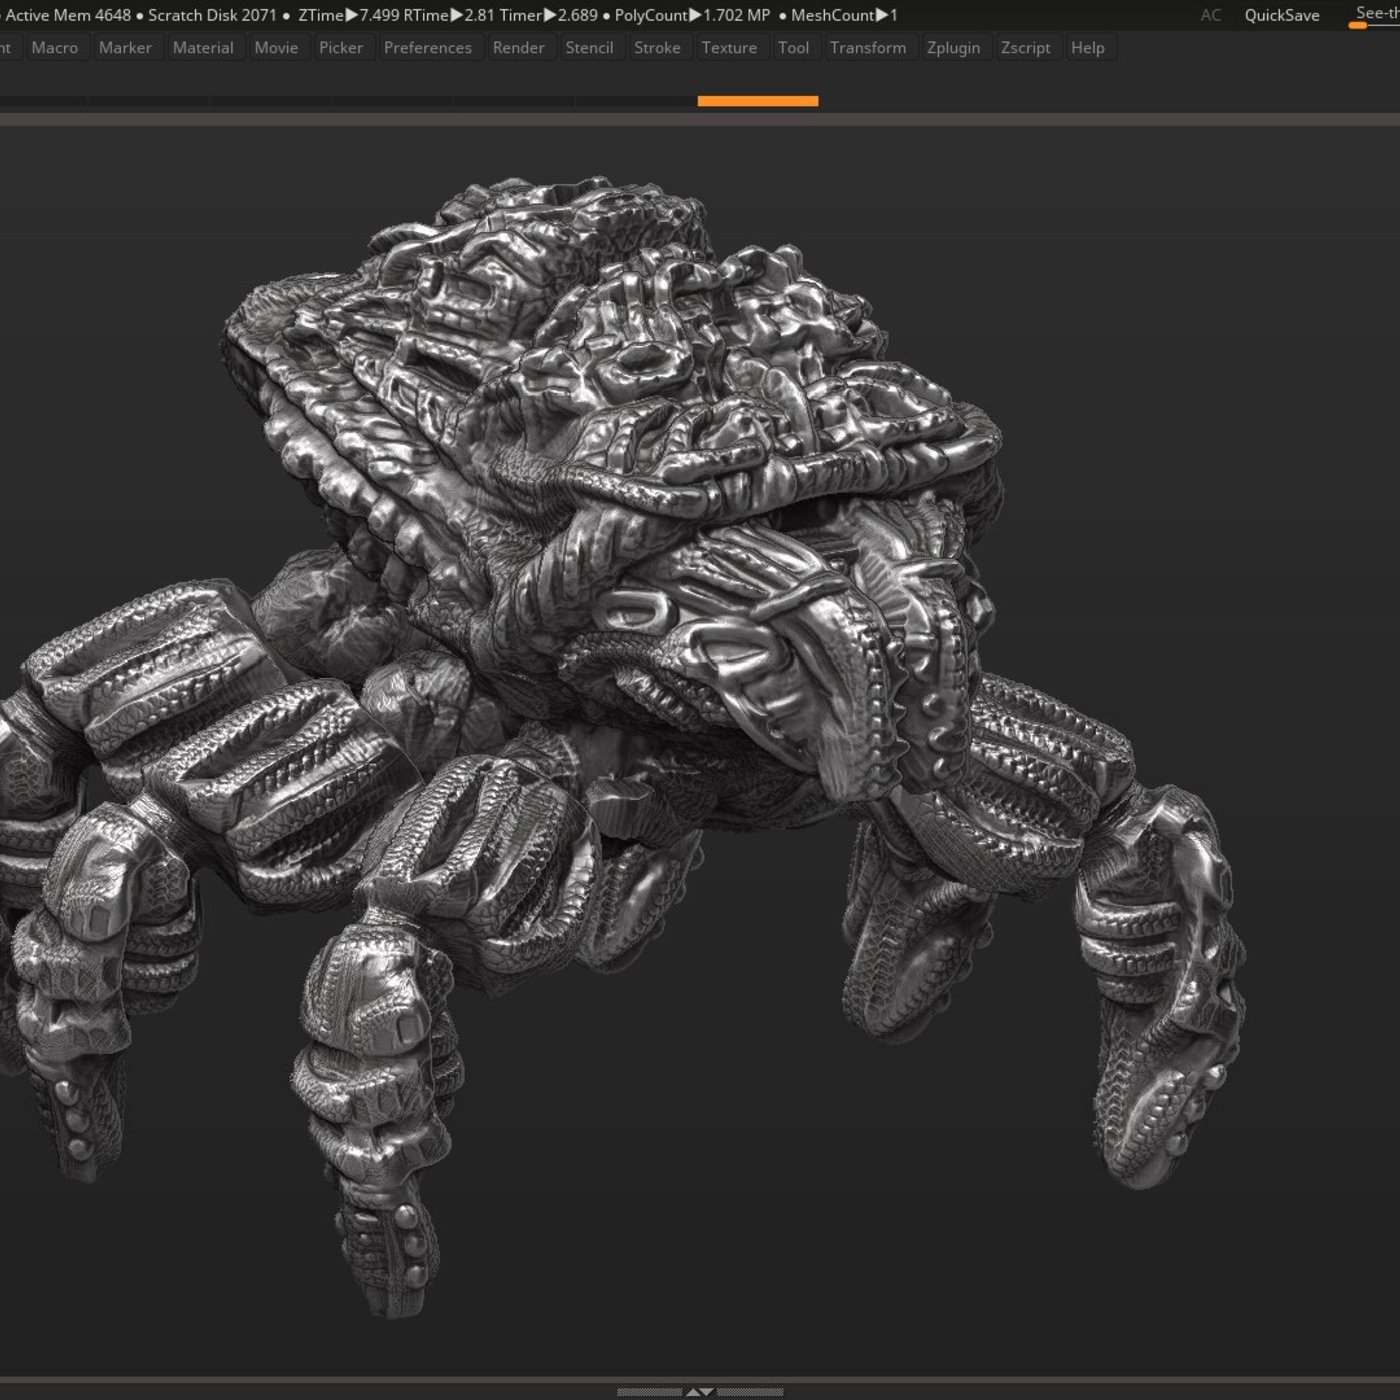 robot spider character 3d print and low poly model PBR textures